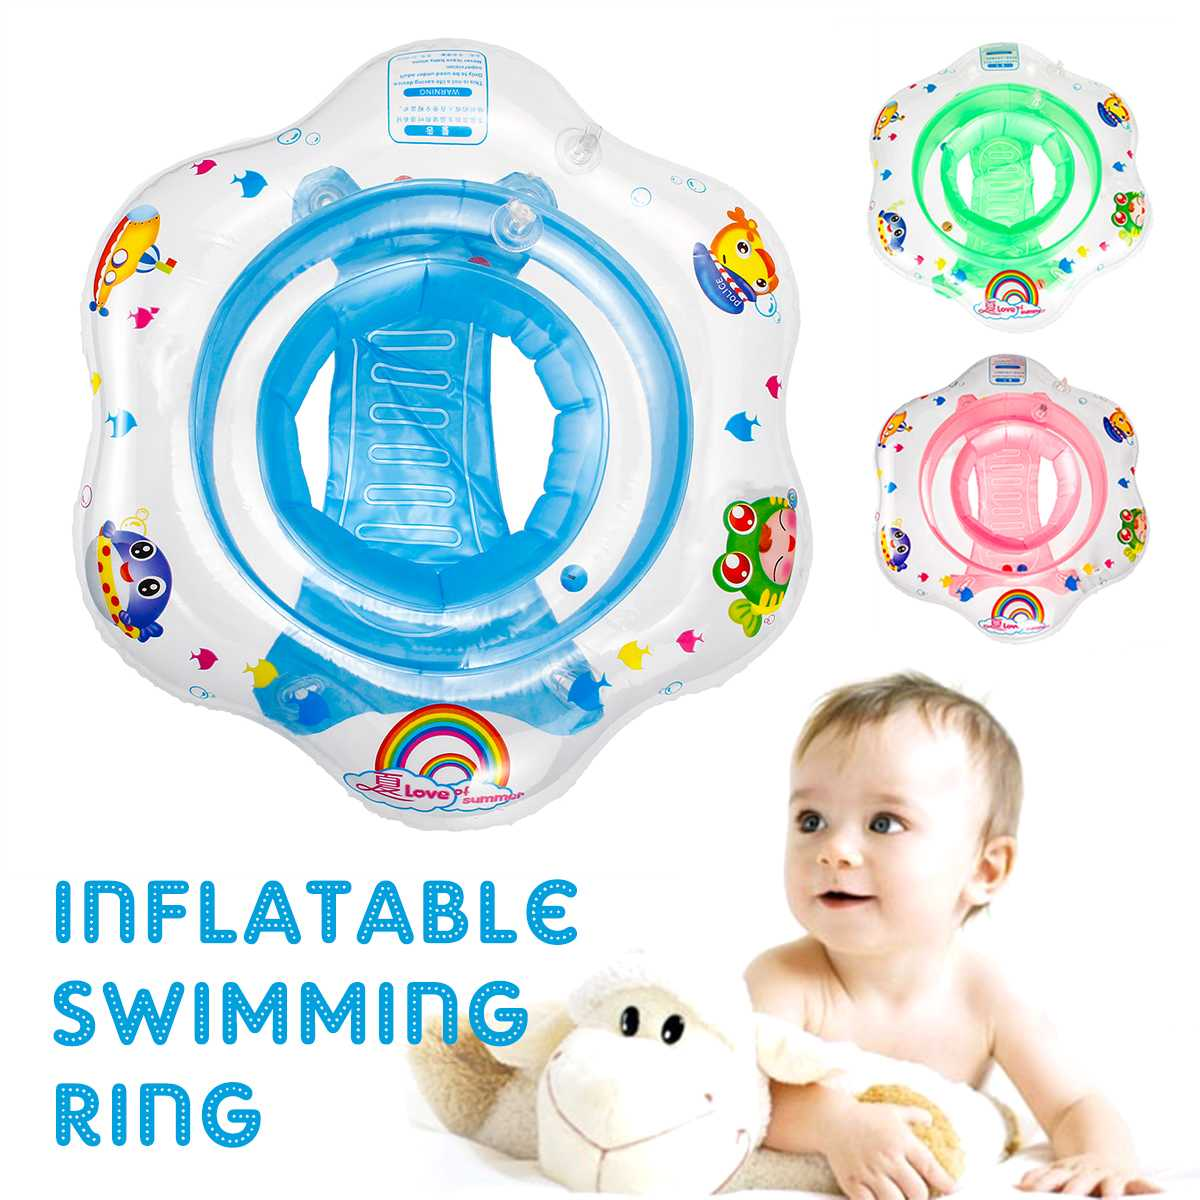 Kids Baby Swimming Ring Pool Accessories Durable Inflatable Swimming Pool Ring Leak-Proof Train Safety Water Toy Children Float